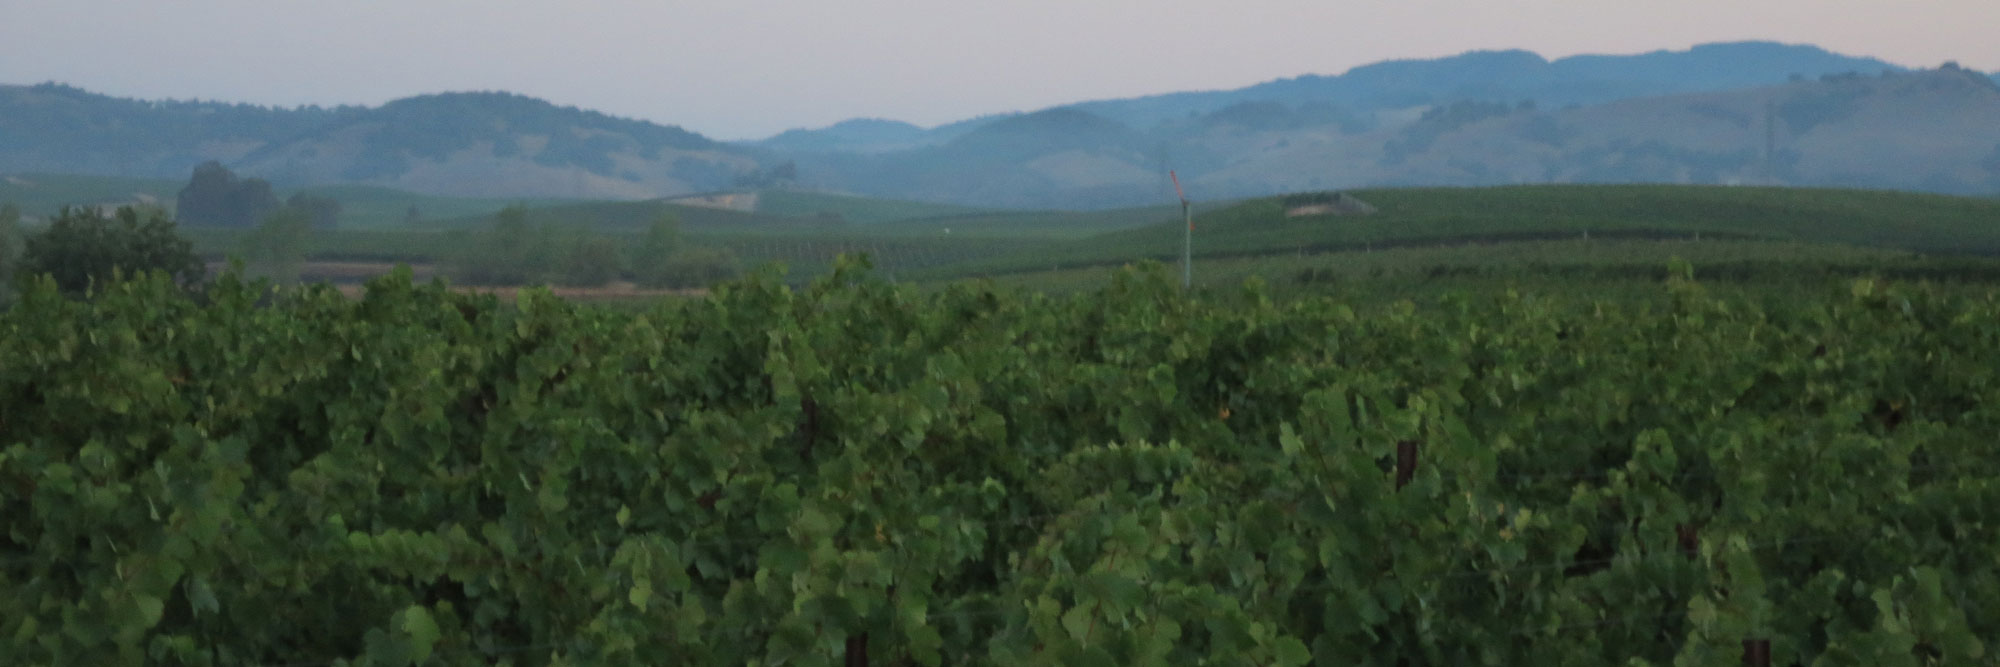 Dearden Wines Vineyards